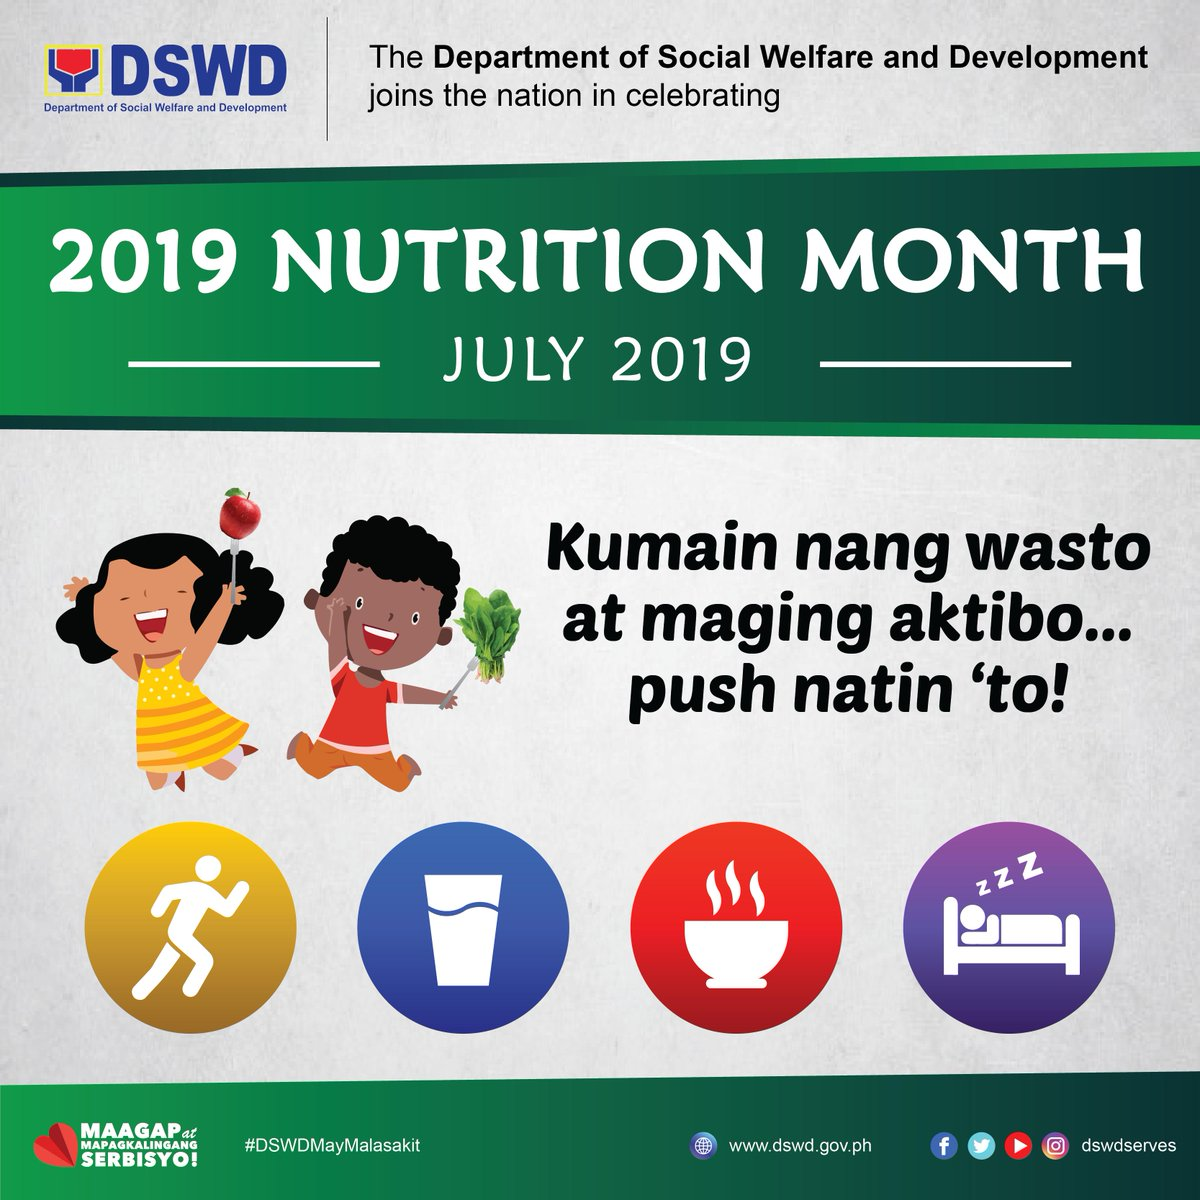 dswd joins the nation in celebrating the 2019 nutrition month with the theme quot